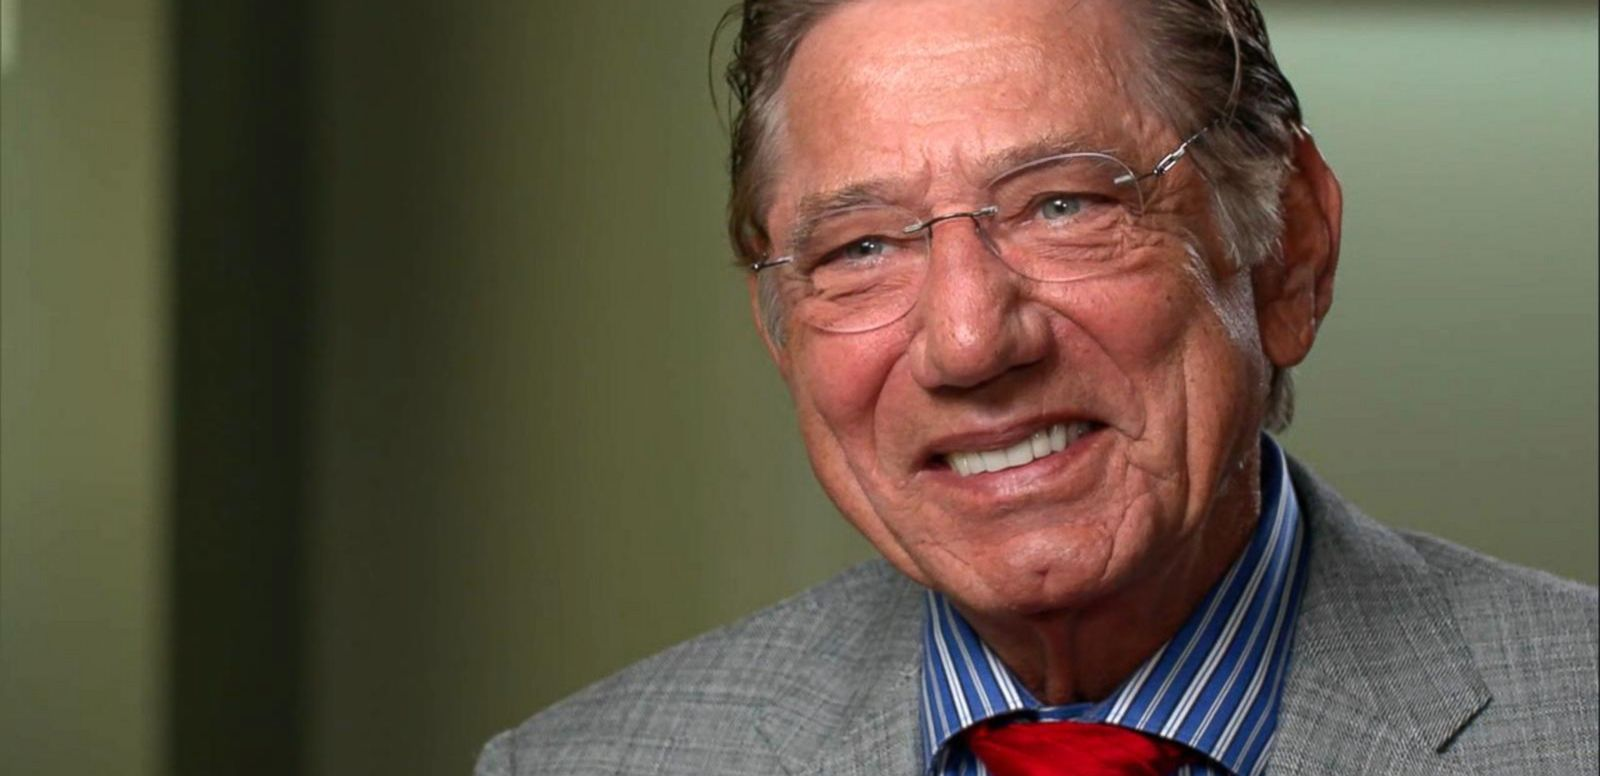 VIDEO: Joe Namath Talks About Brain Injury, Treatments